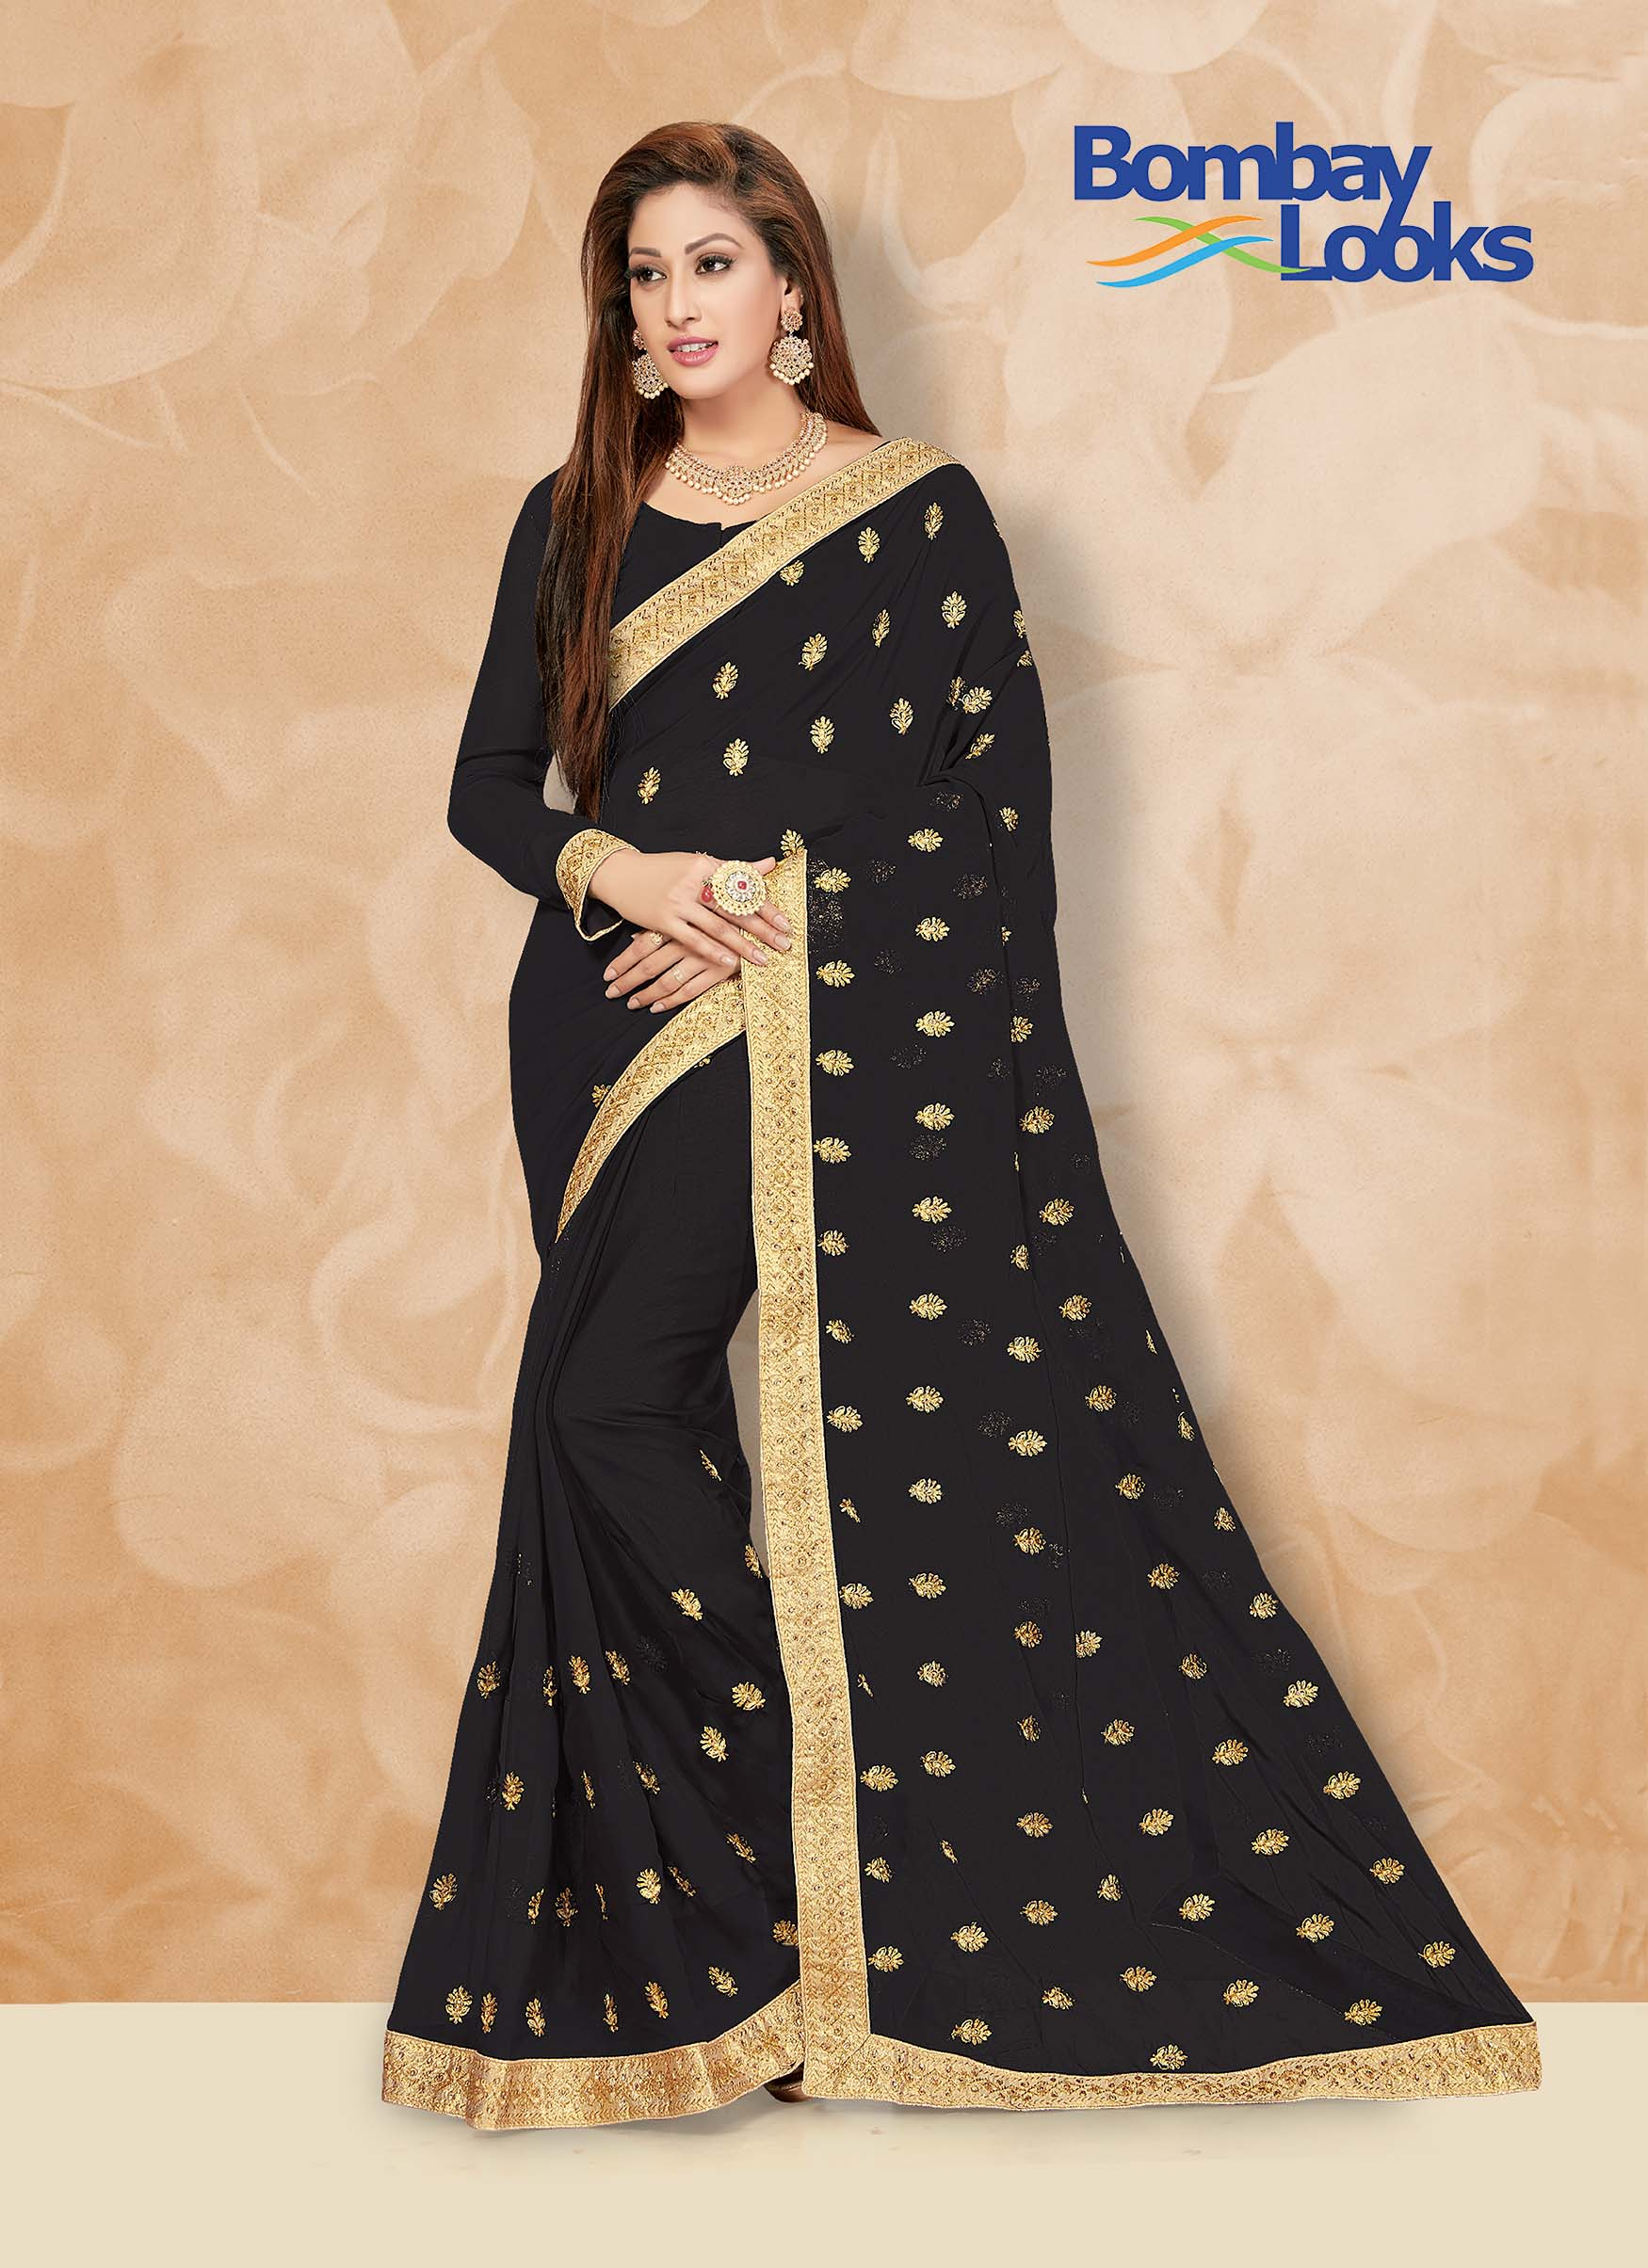 Soft Georgette black saree with elegant gold border